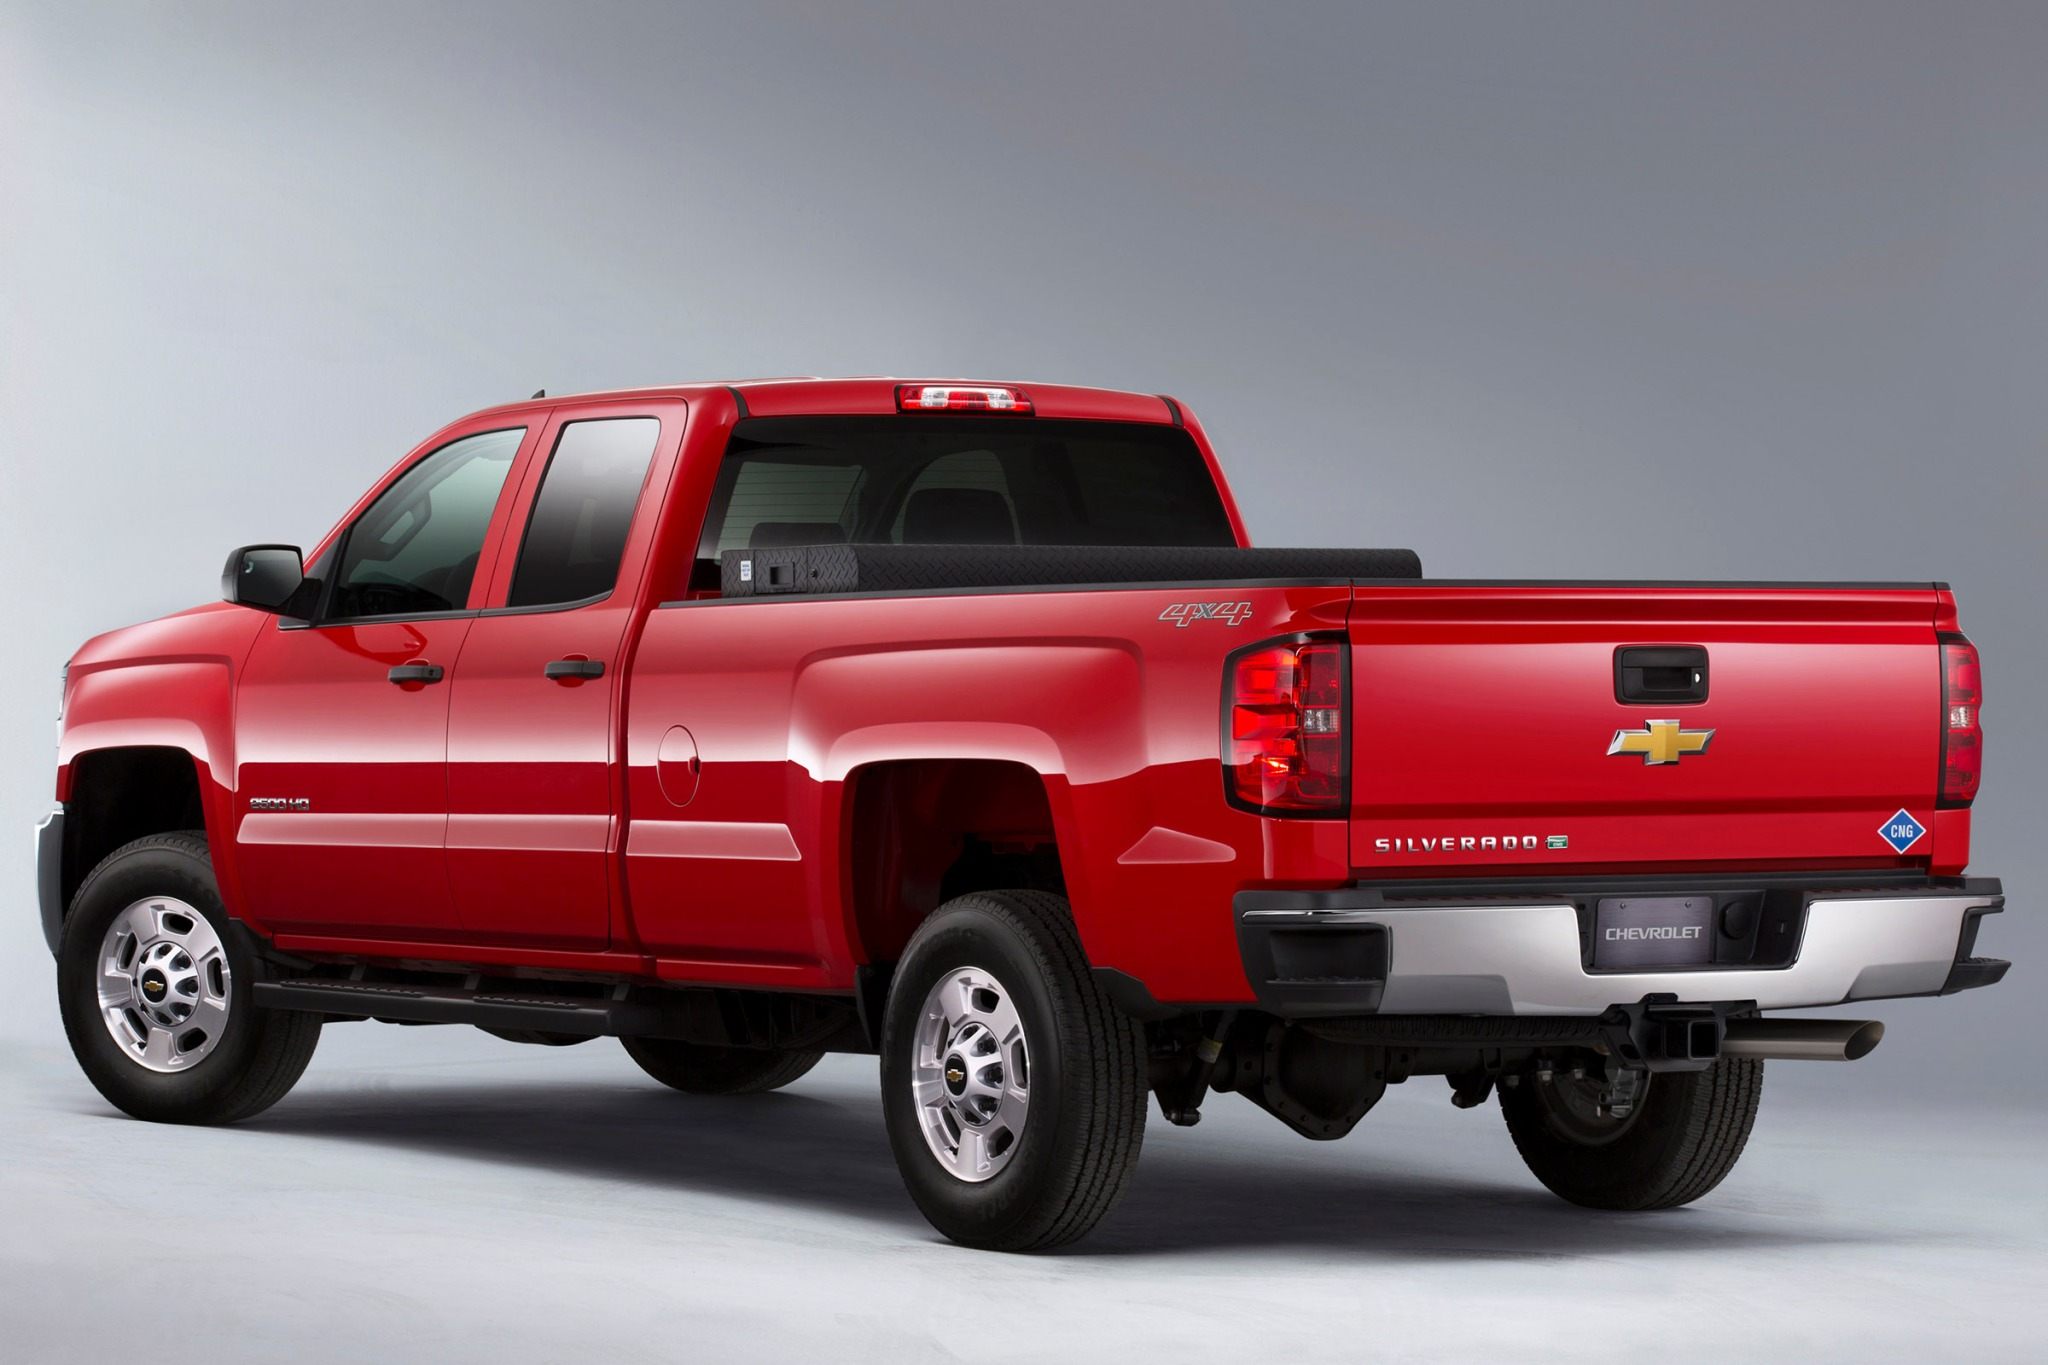 2018 chevrolet silverado 2500 hd ltz extended cab car photos catalog 2018. Black Bedroom Furniture Sets. Home Design Ideas